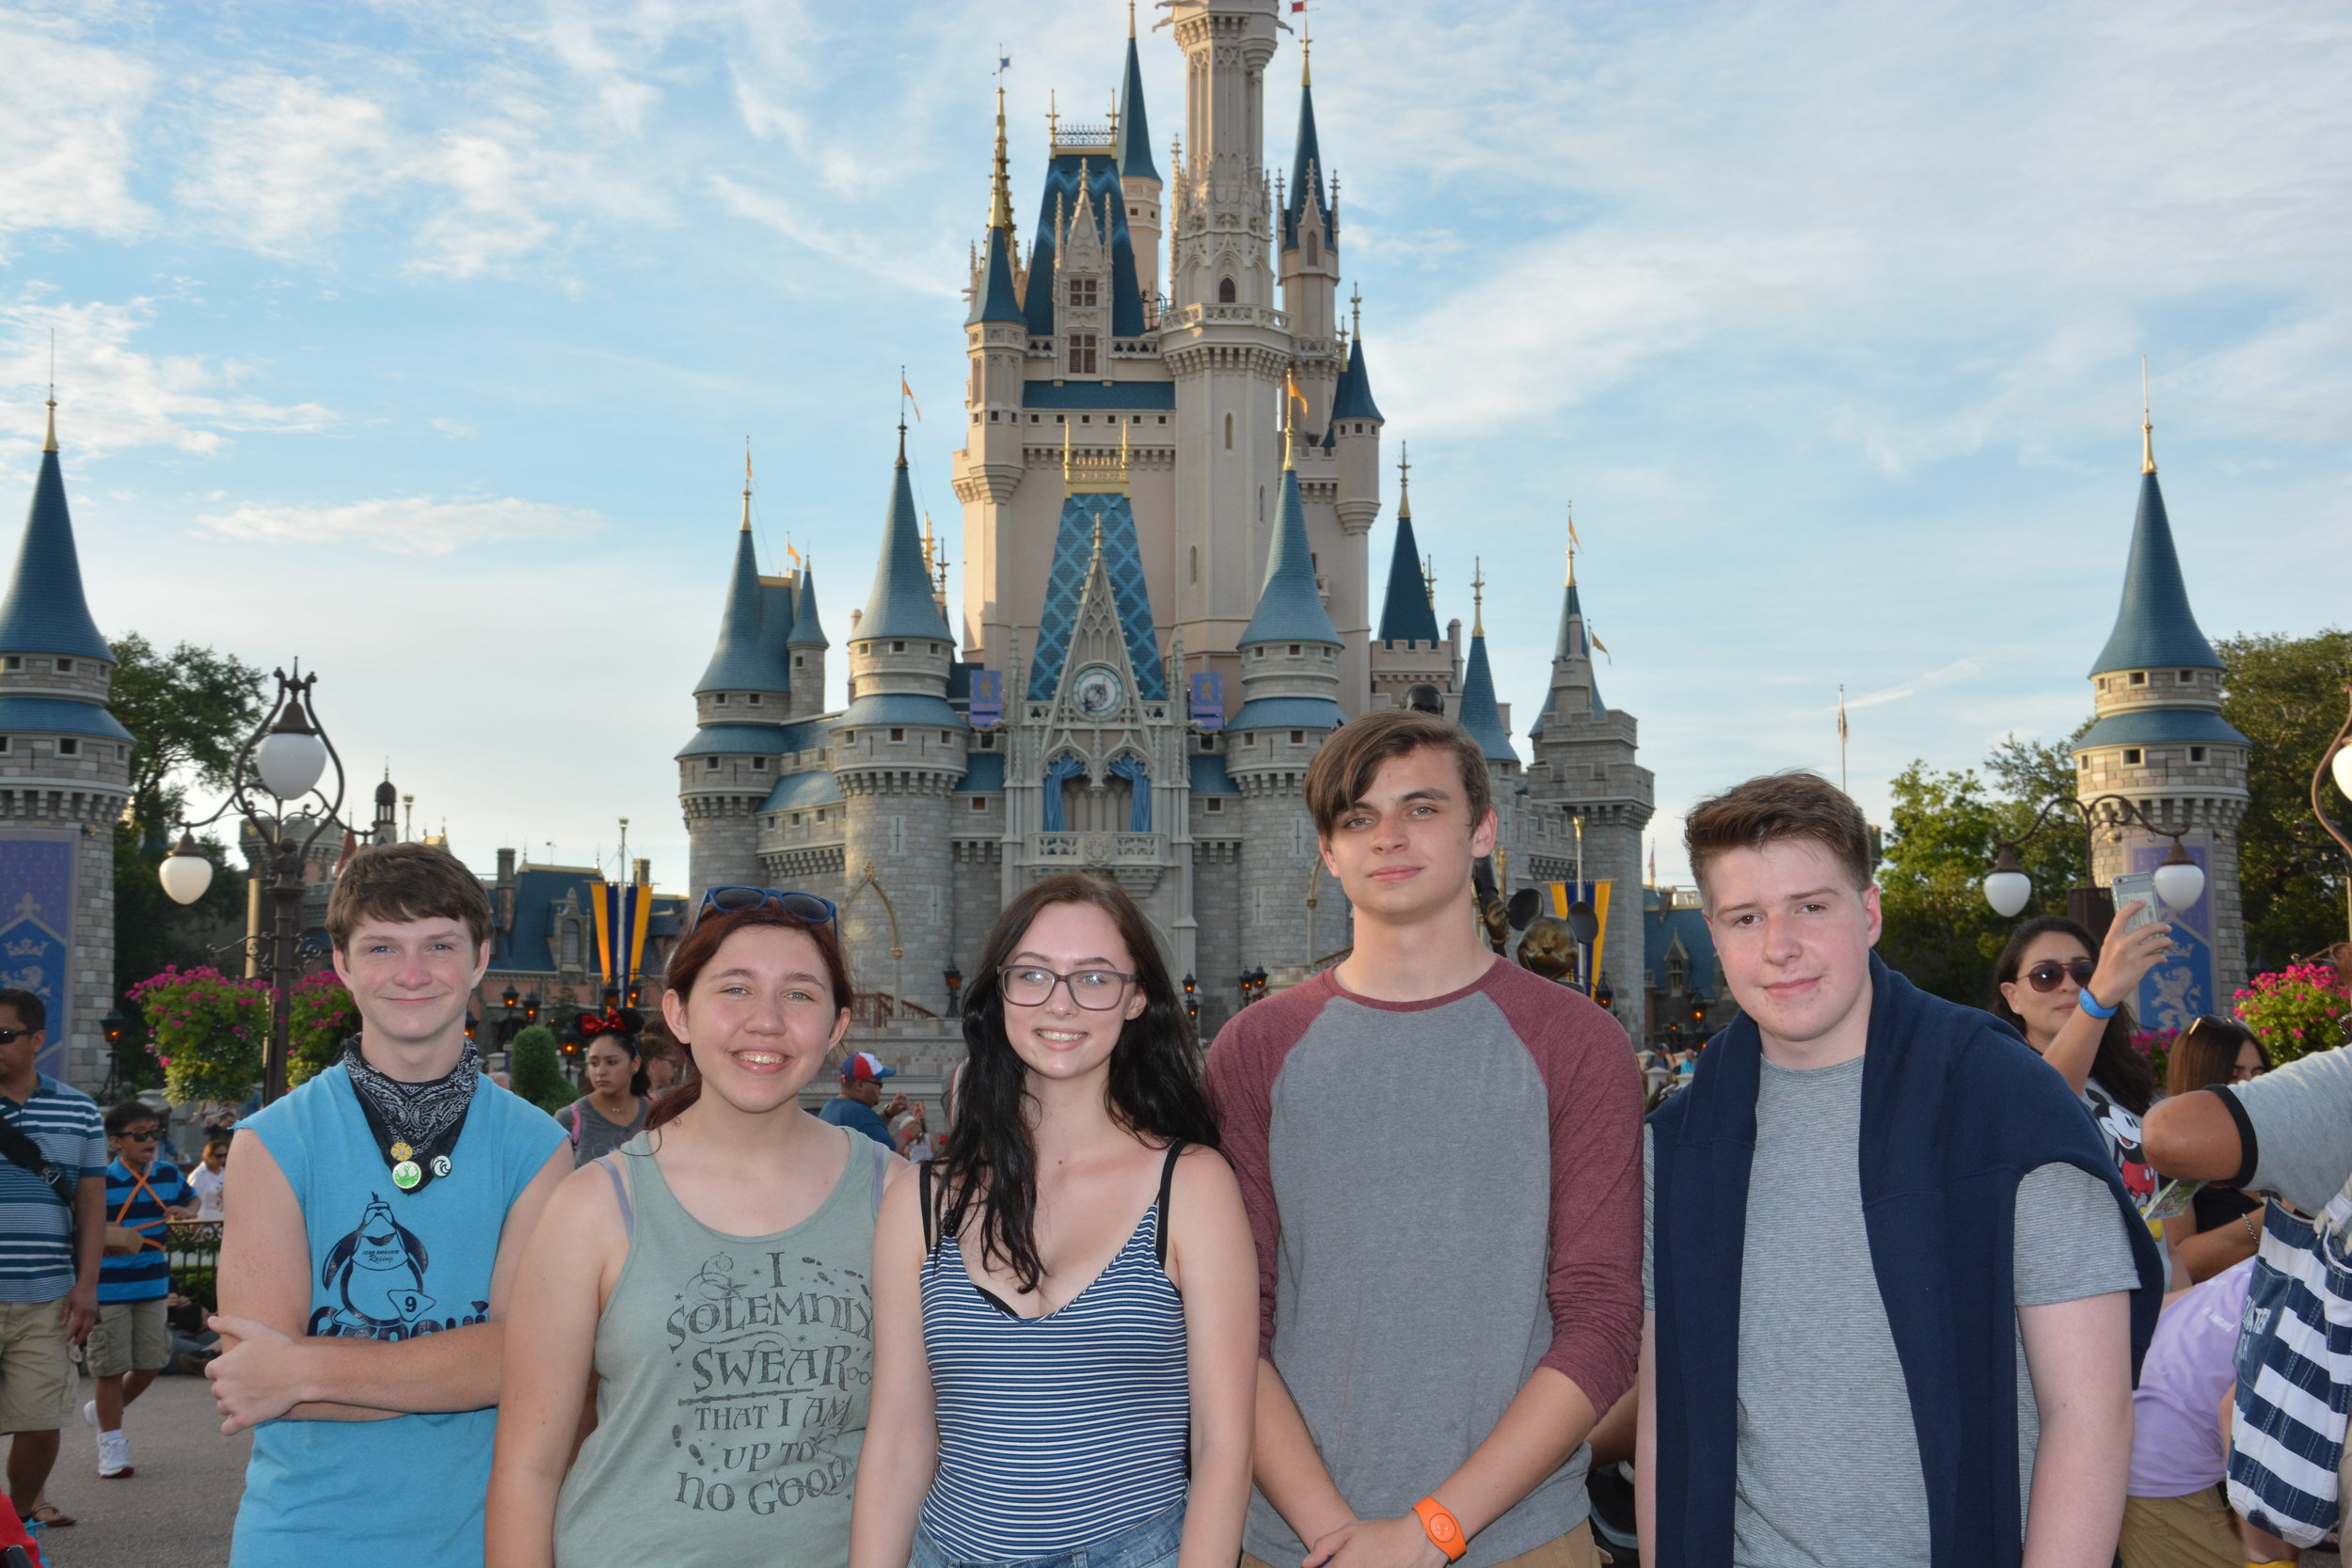 Band students Karsten, Maddison, Josie, Michael & Spencer in front of the Castle